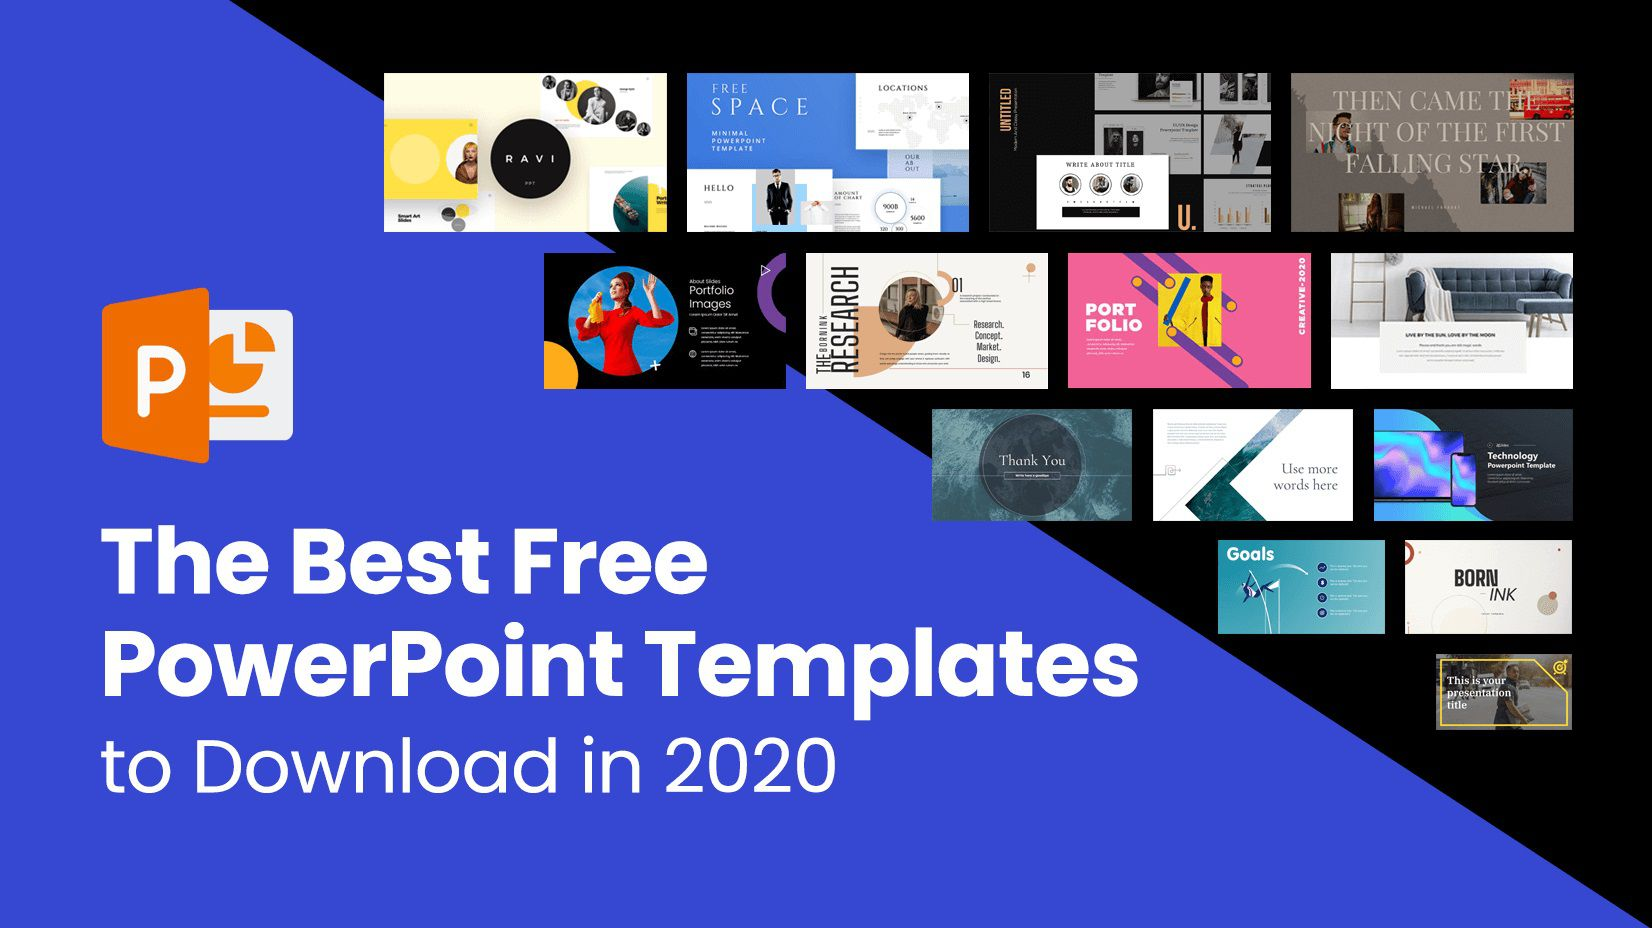 009 Marvelou Best Powerpoint Template Free Inspiration  Busines Download White Background 2019Full